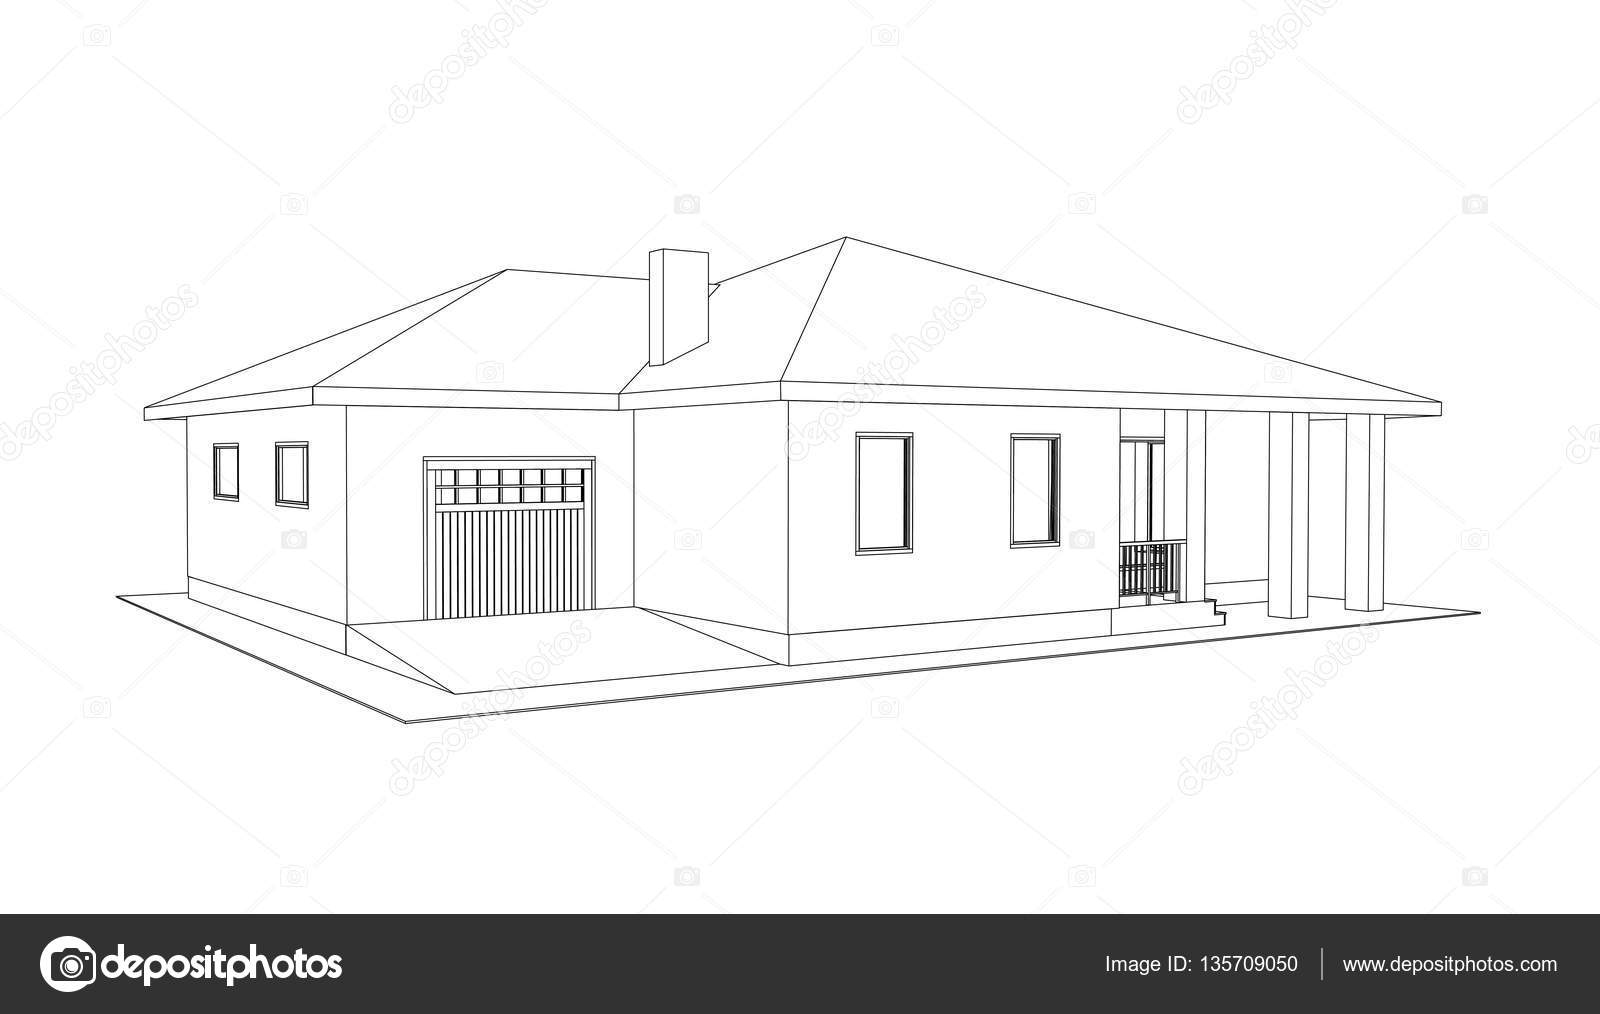 Building Perspective 3D. Drawing Of The Suburban House. Outlines Cottage On  White Background. House 3D Model Perspective Vector. Cottage Blueprint. EPS  10.